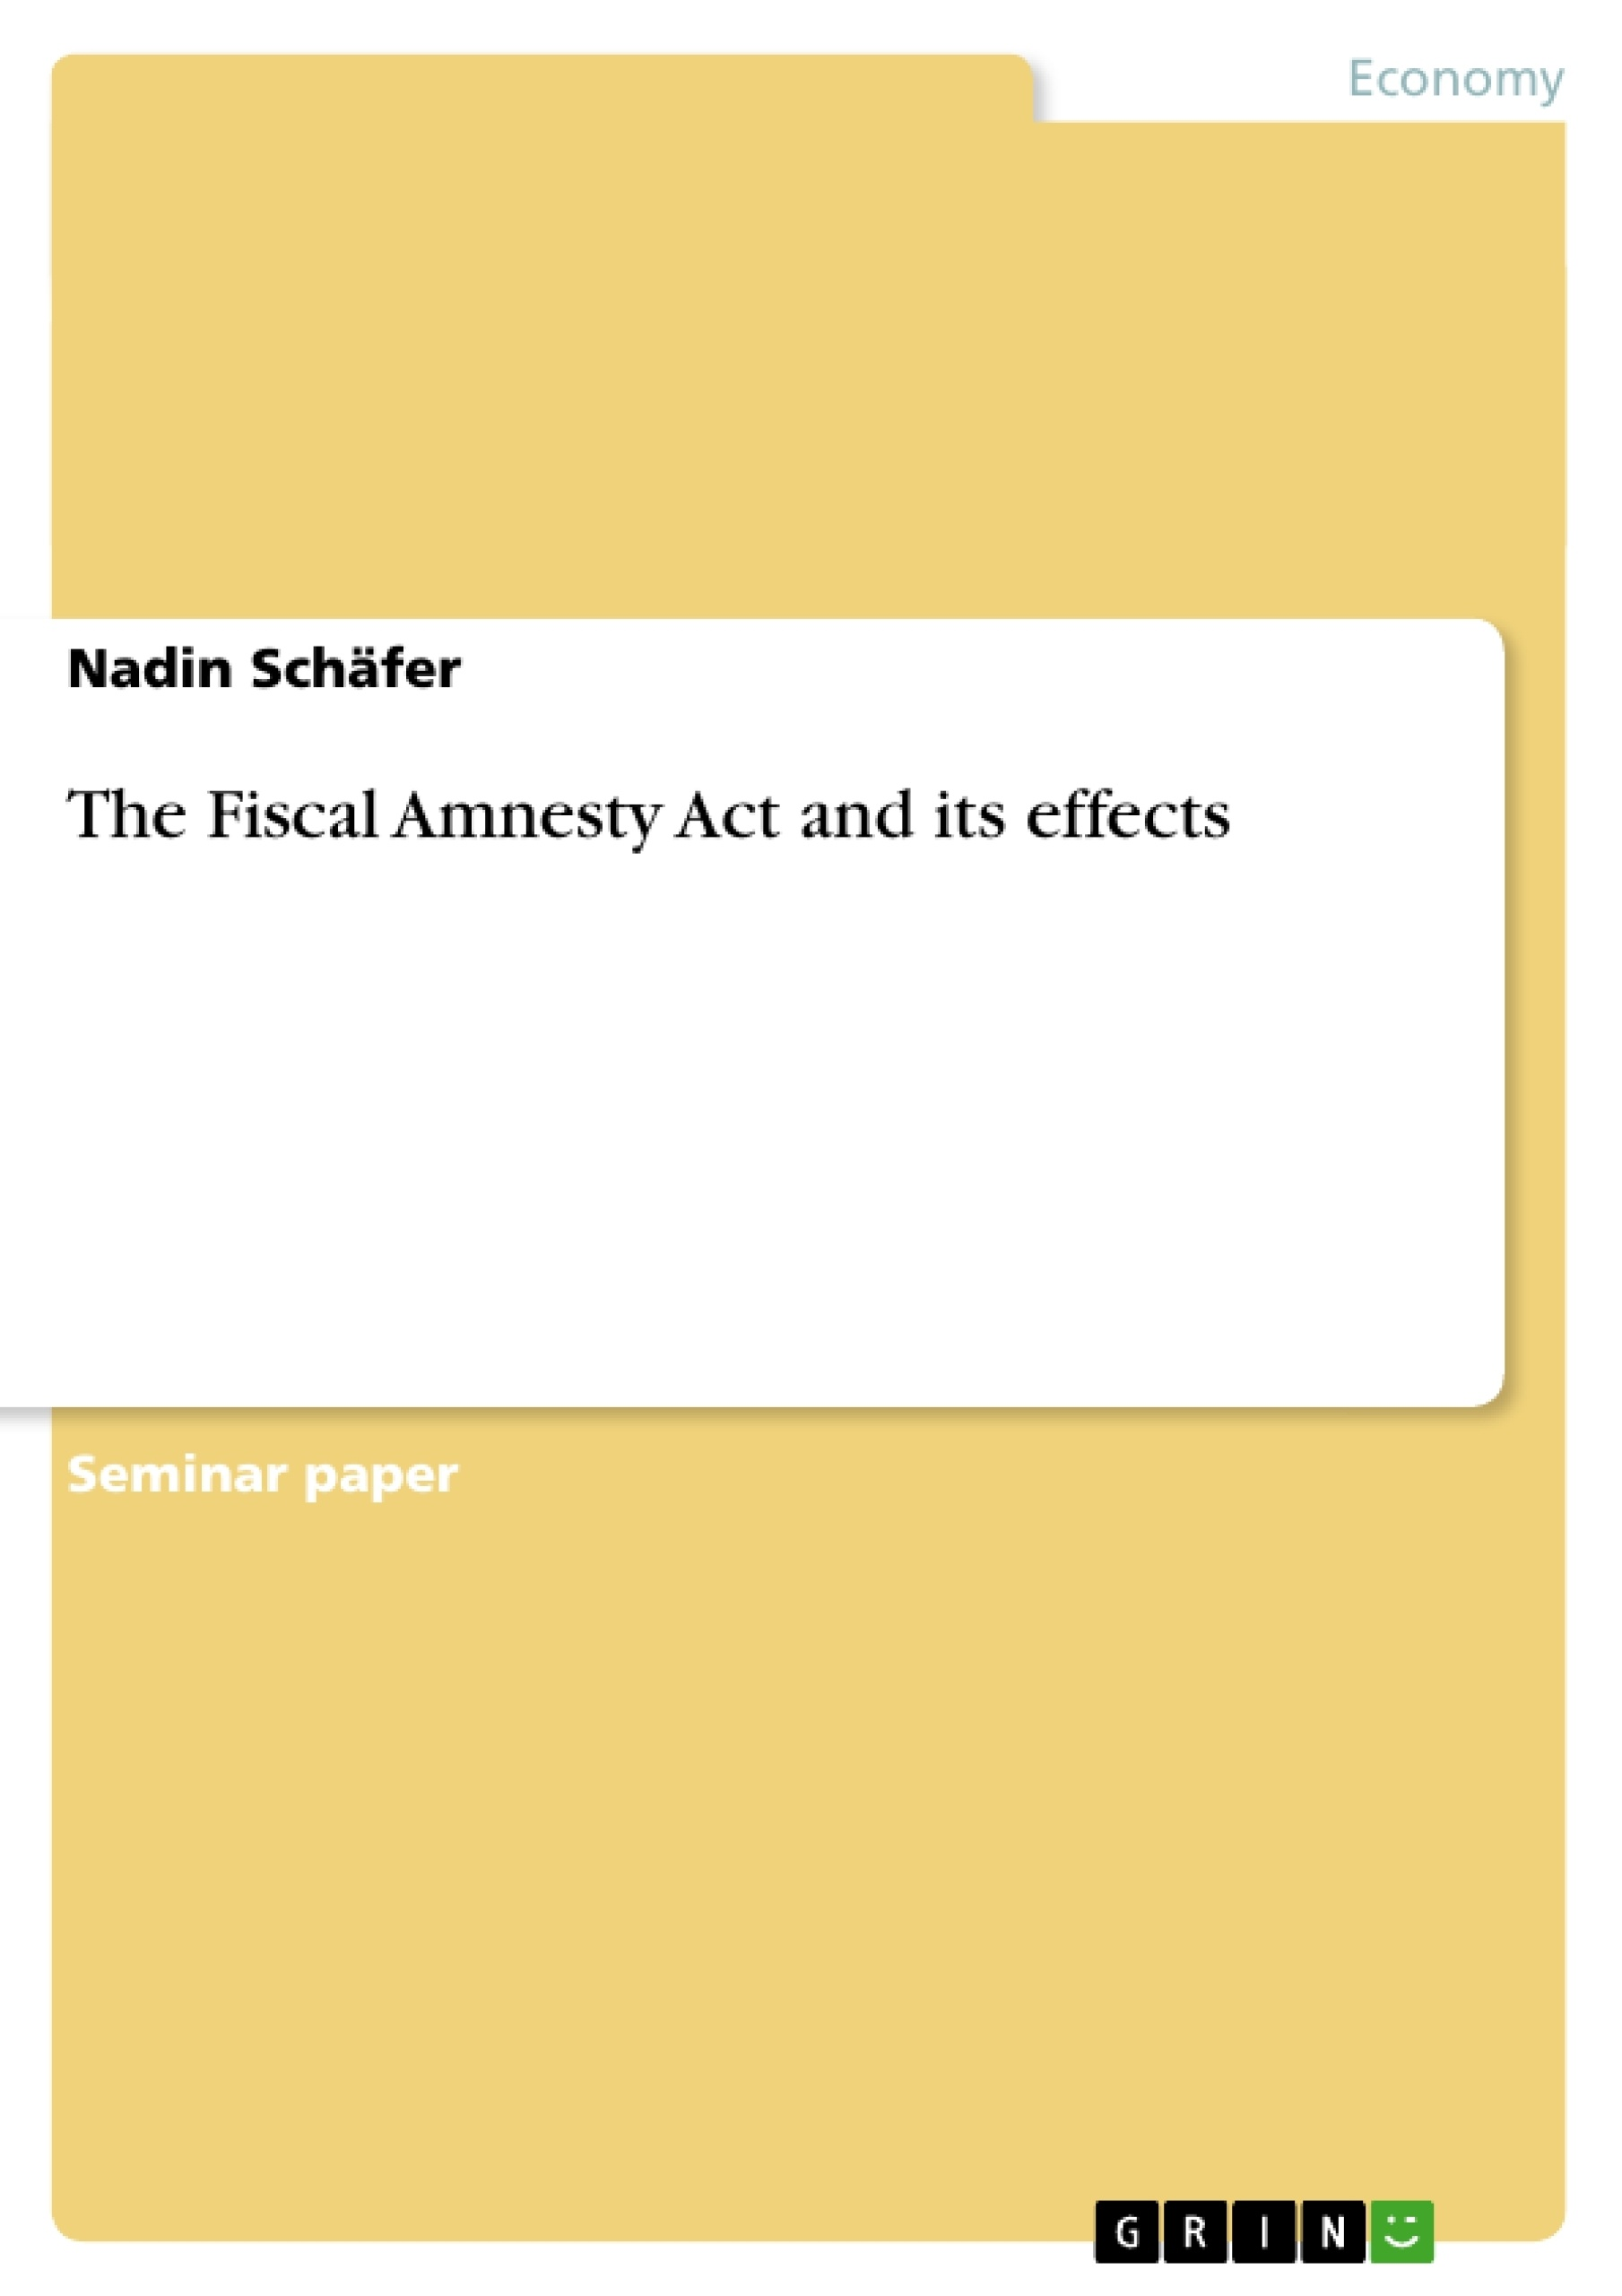 Title: The Fiscal Amnesty Act and its effects